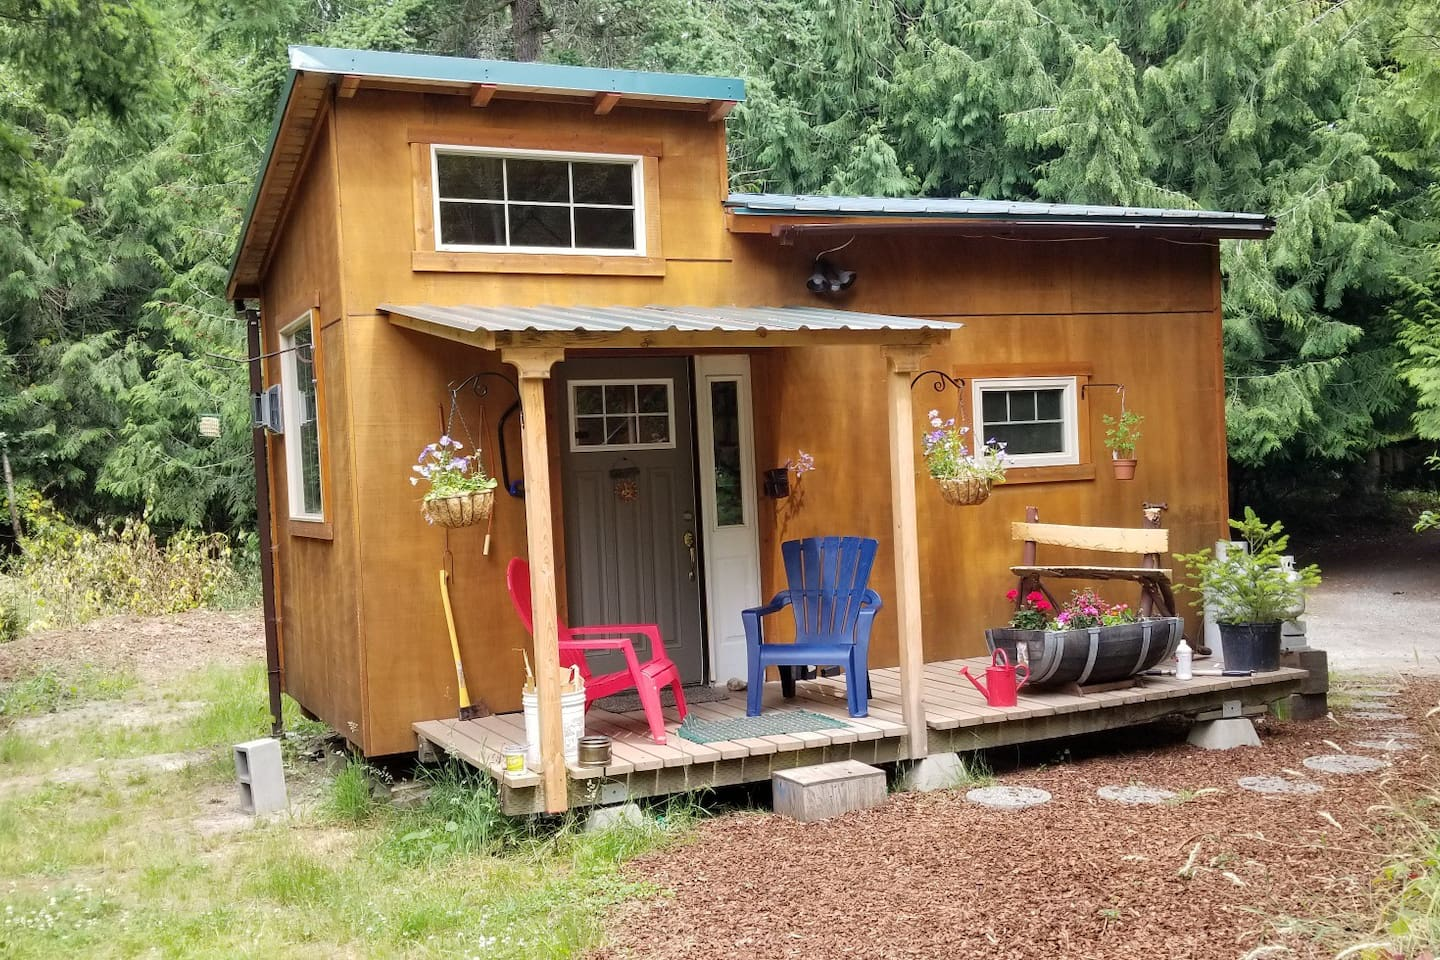 Summer time at the Sunrise Sunset Tiny house